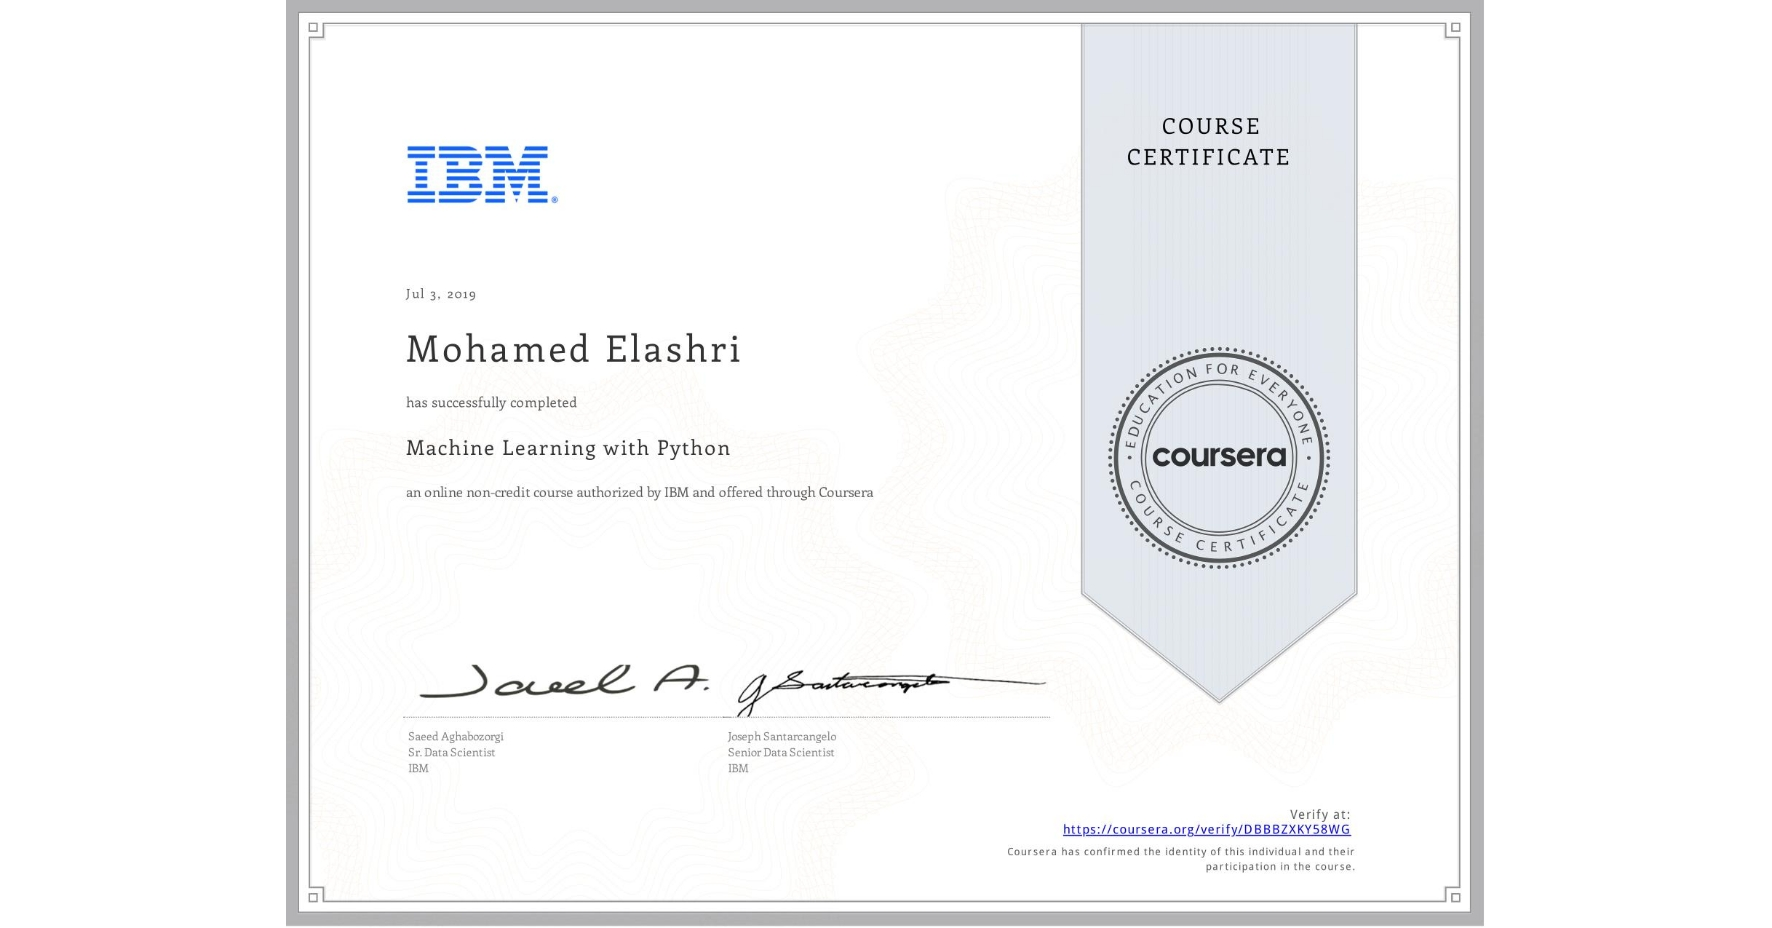 View certificate for Mohamed Elashri, Machine Learning with Python, an online non-credit course authorized by IBM and offered through Coursera